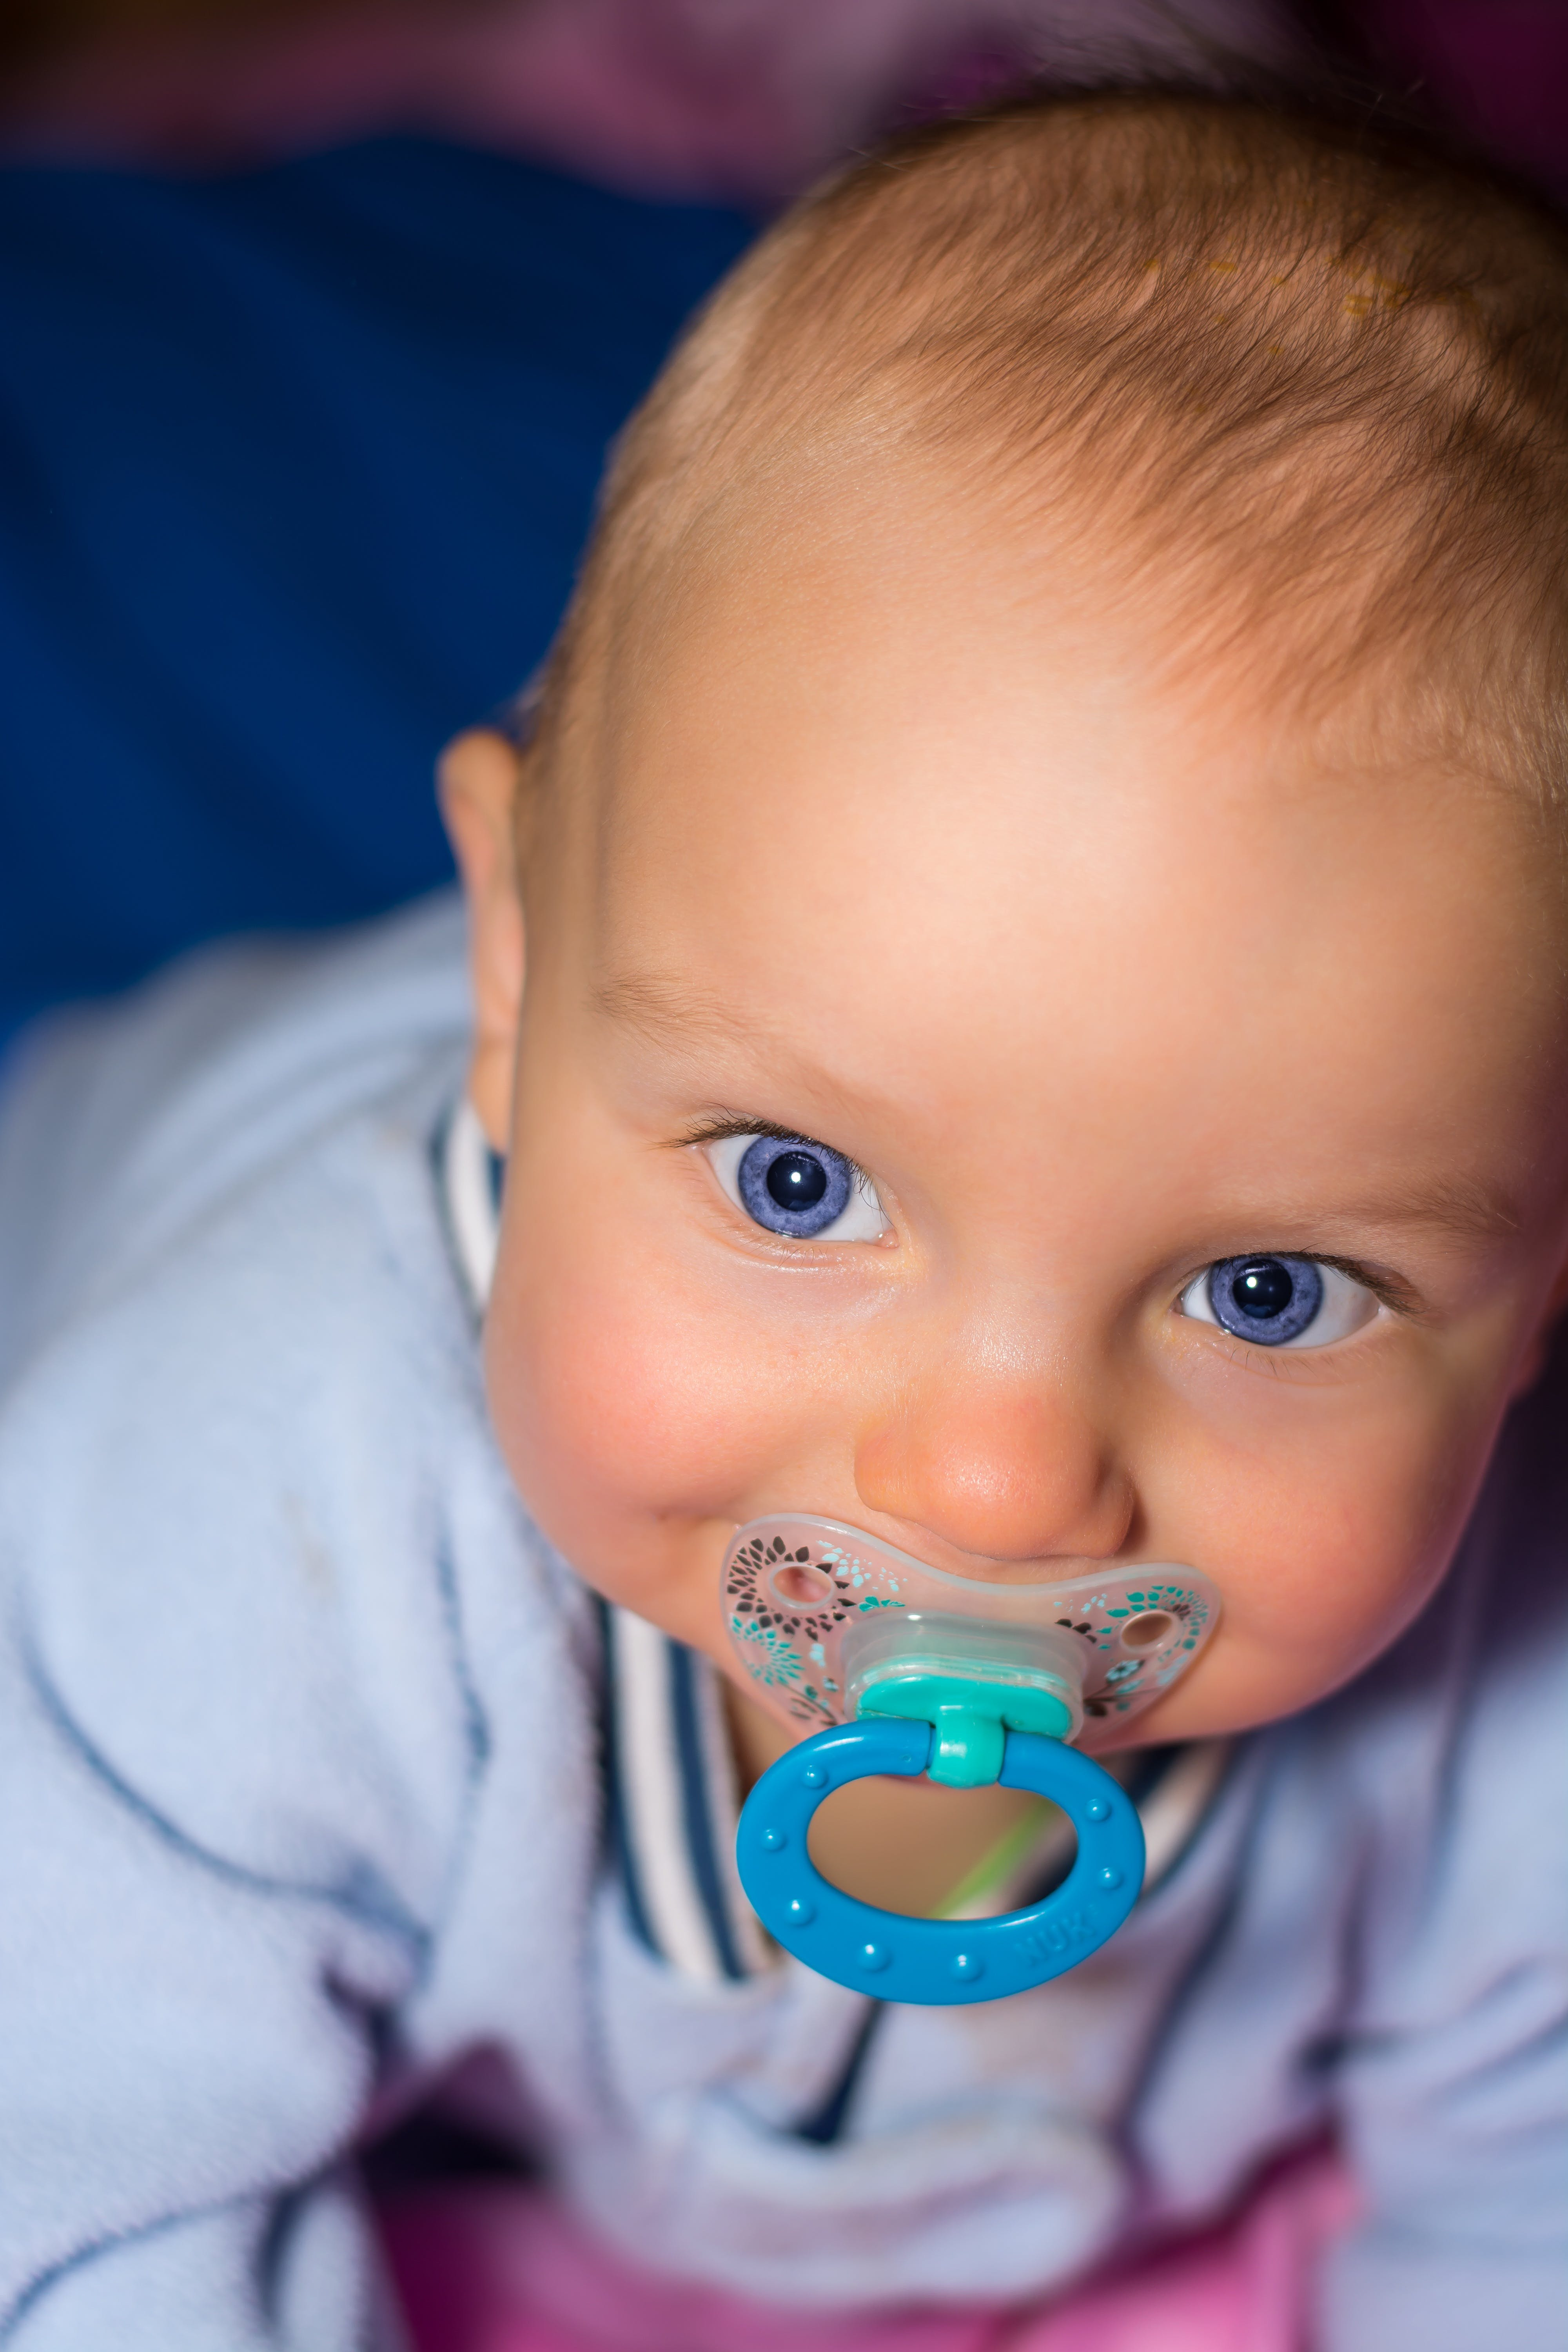 Health Officials Warn of Honey-Filled Pacifiers